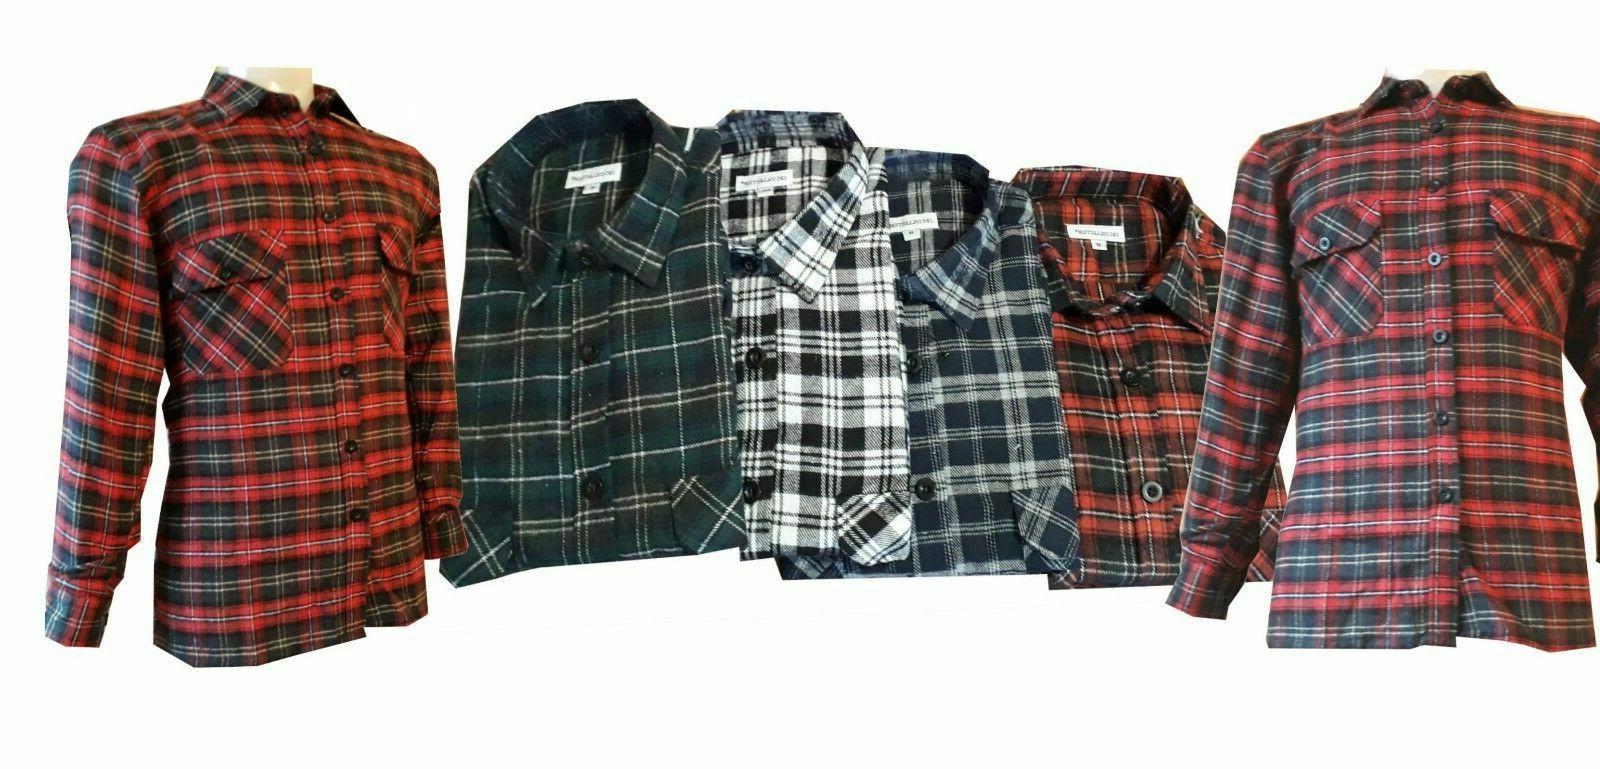 Work Cotton Shirt Check Lumberjack Gardening Walking